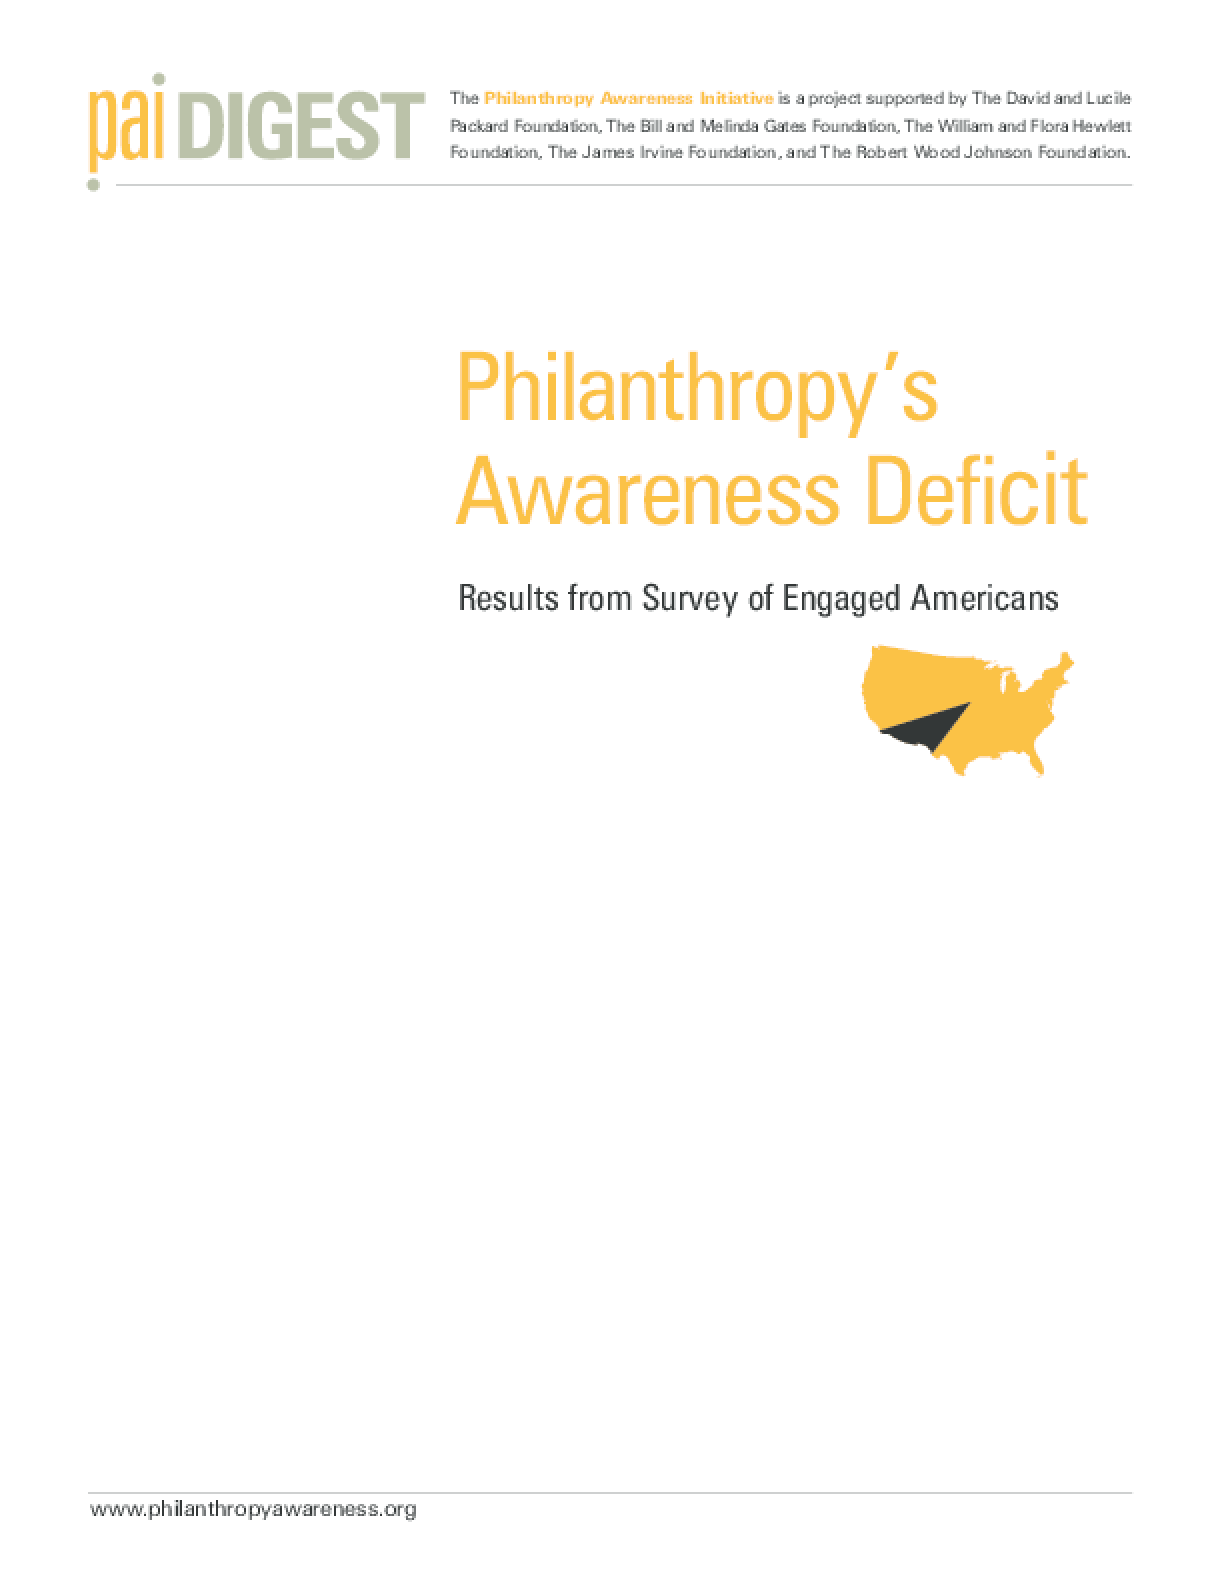 Philanthropy's Awareness Deficit